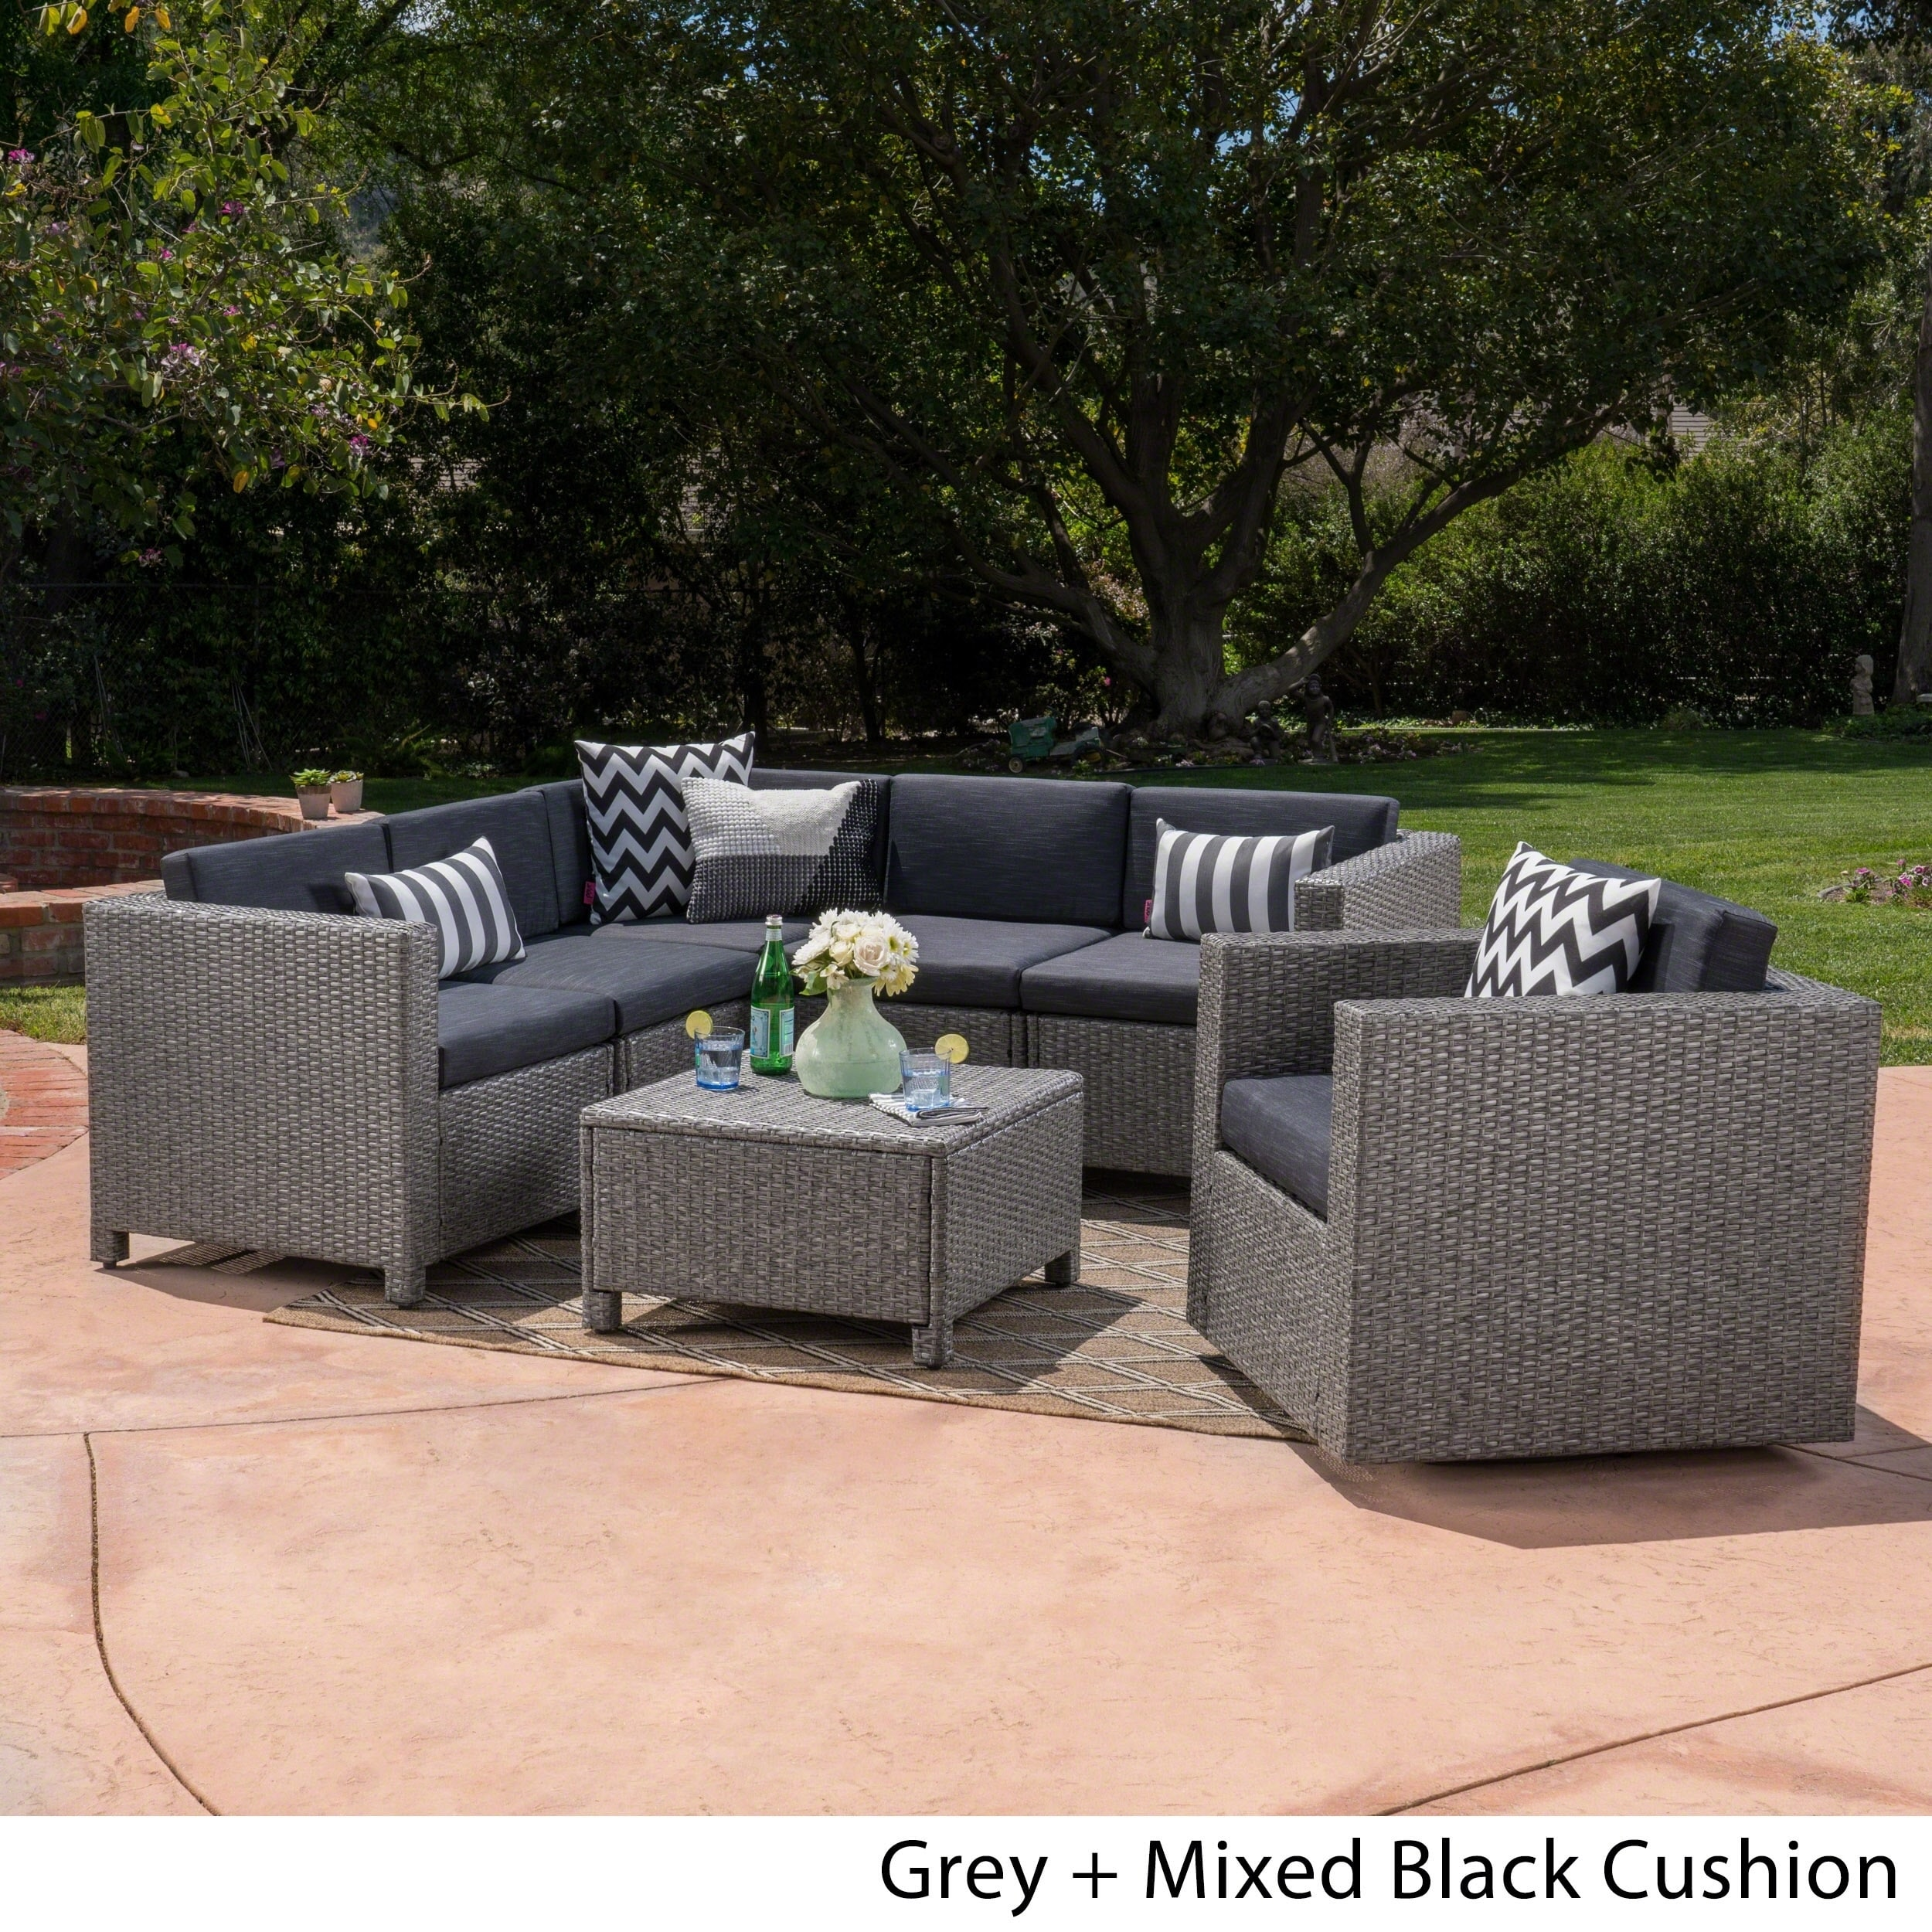 Pleasing Puerta Outdoor 6 Seater Grey Wicker V Shaped Sofa And Swivel Chair Set By Christopher Knight Home Spiritservingveterans Wood Chair Design Ideas Spiritservingveteransorg